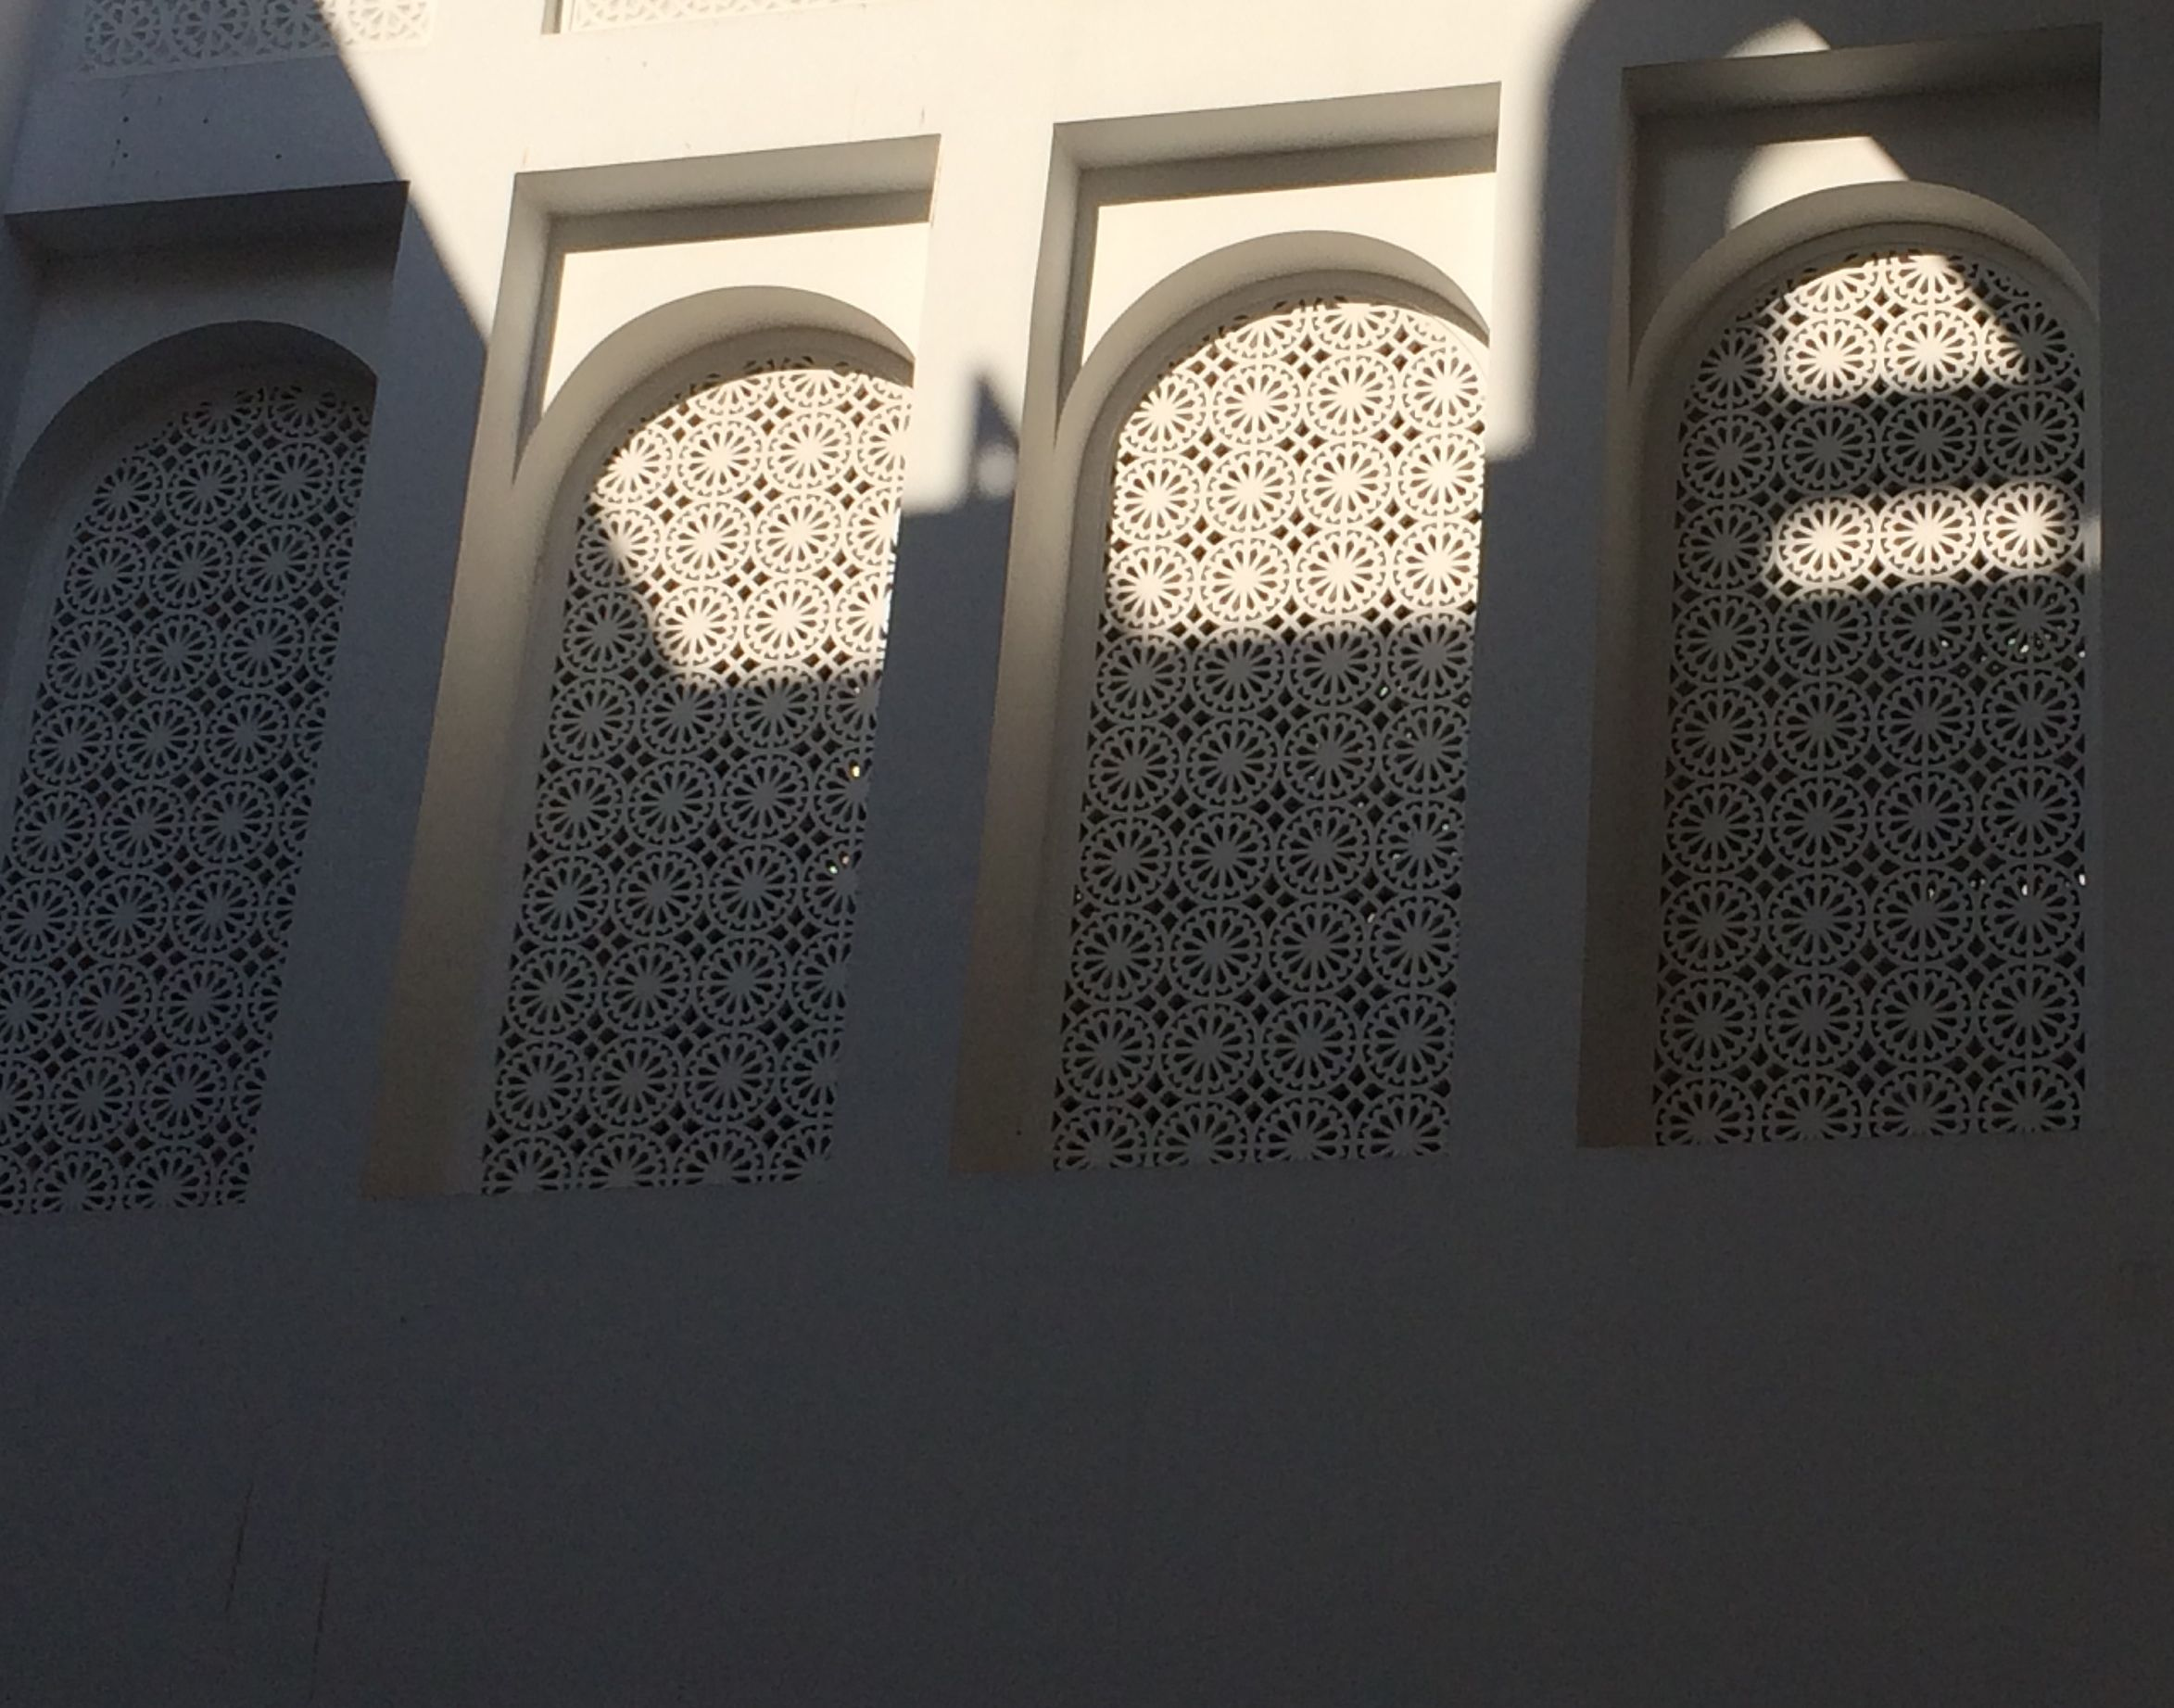 Architectural detail in the newly refurbished Manama souq